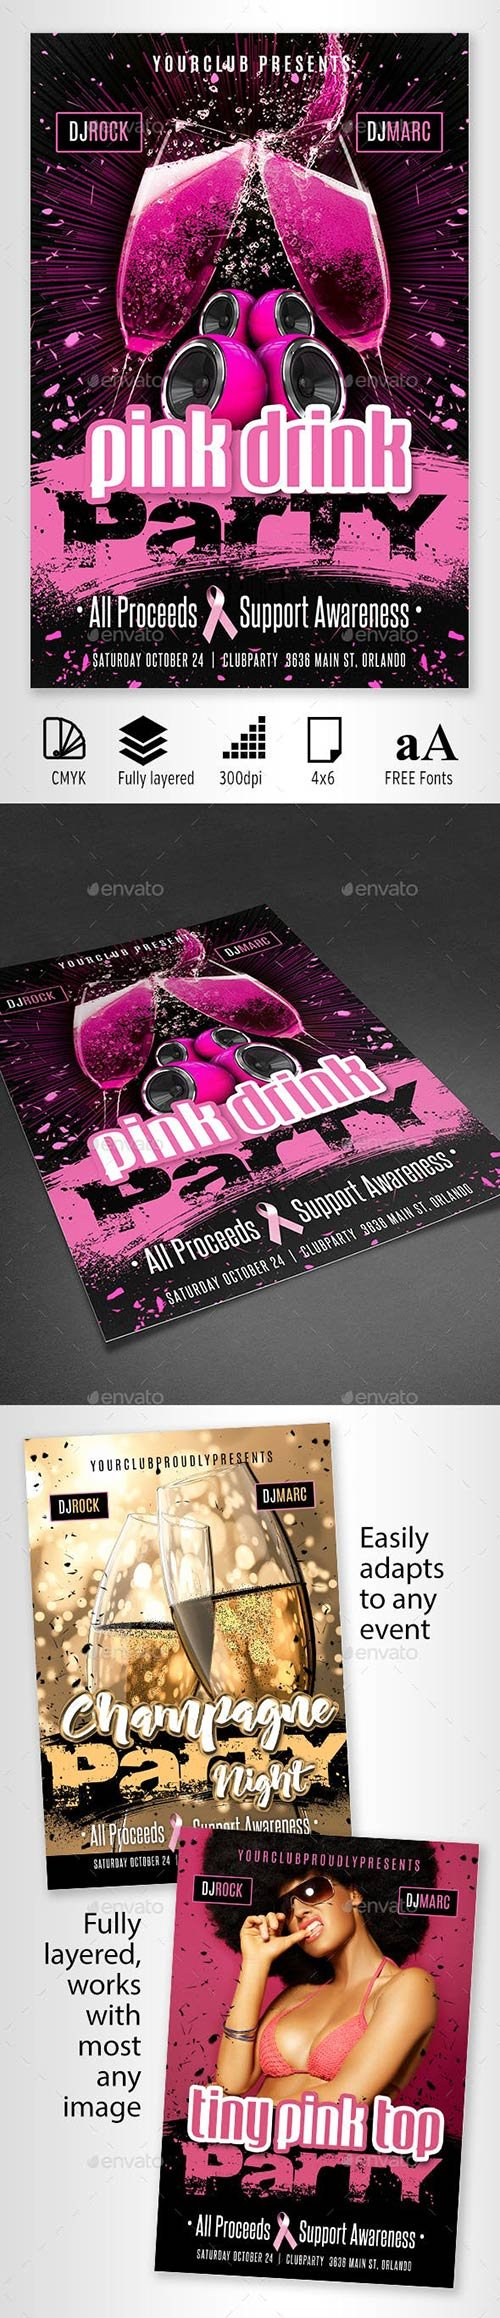 GraphicRiver - Pink Drink flyer 22600284